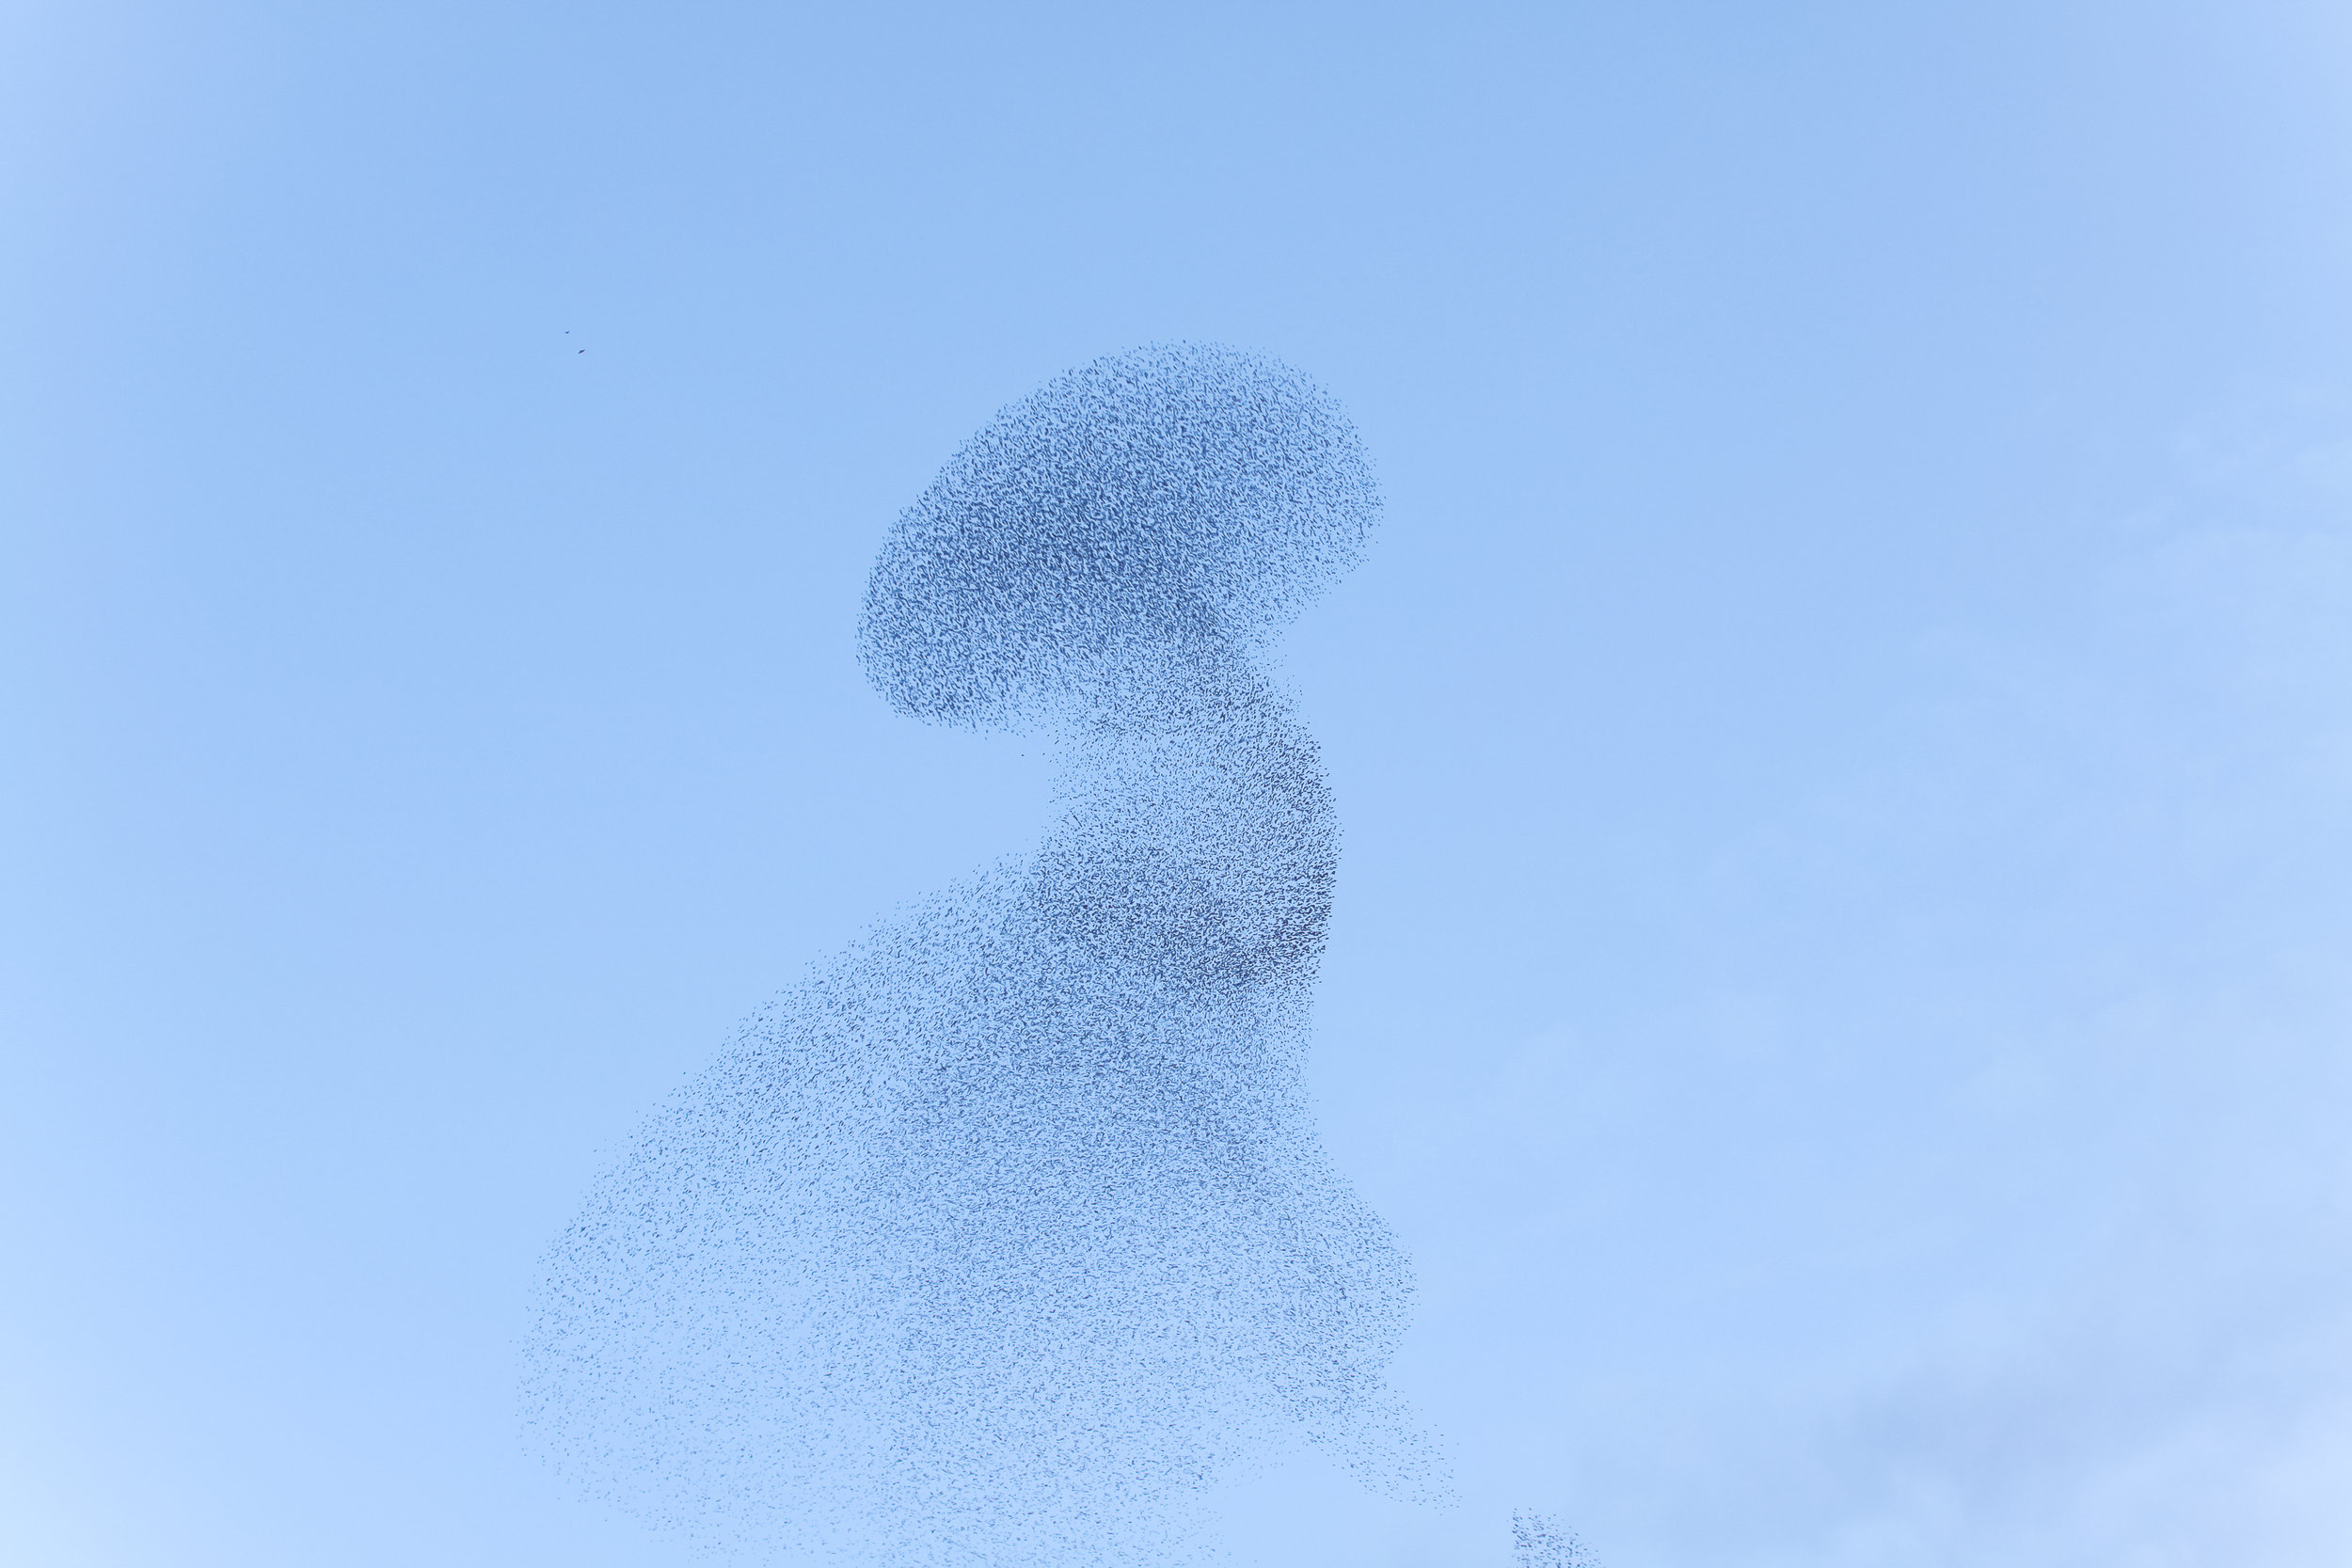 Bird swarm movements